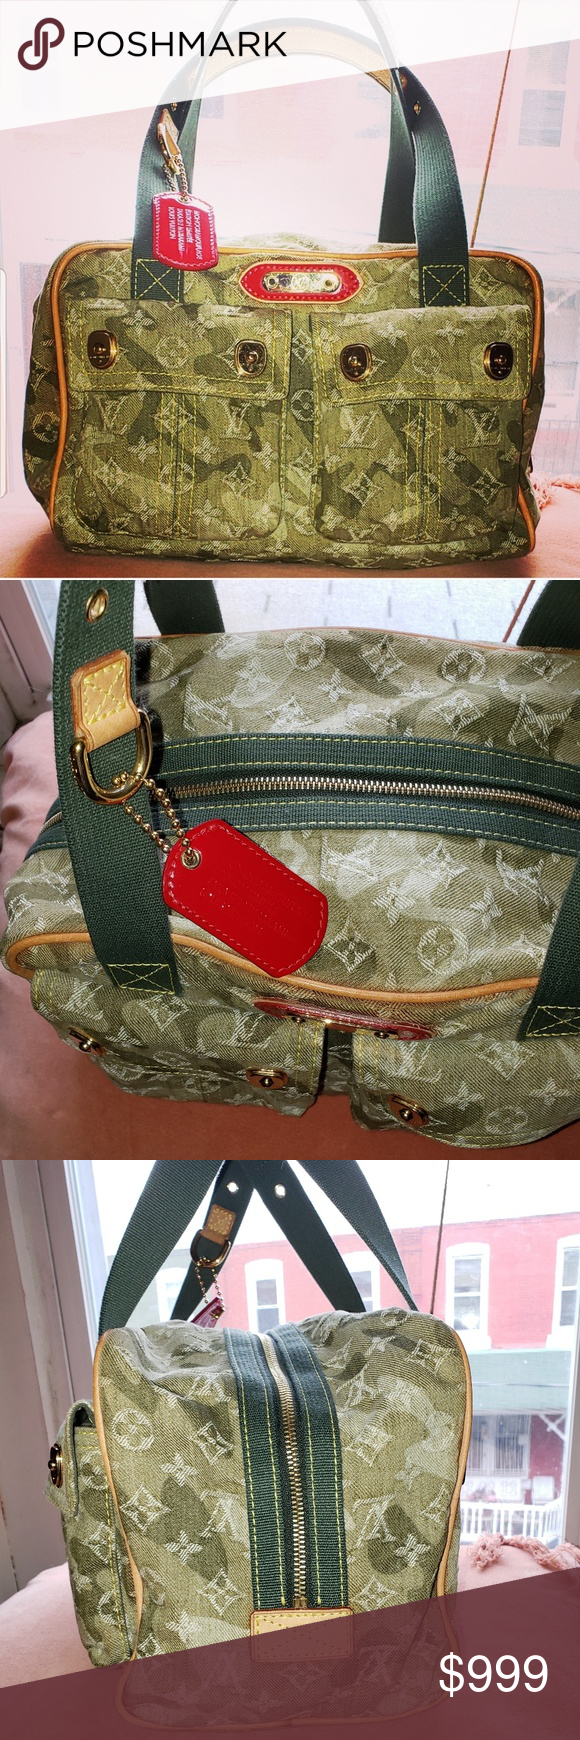 e6a41b09b443 Louis Vuitton Monogramouflage Jasmine Shoulder Bag The Jasmine Denim bag is  a Limited Edition Satchel done in collaboration with Takashi Murakami.